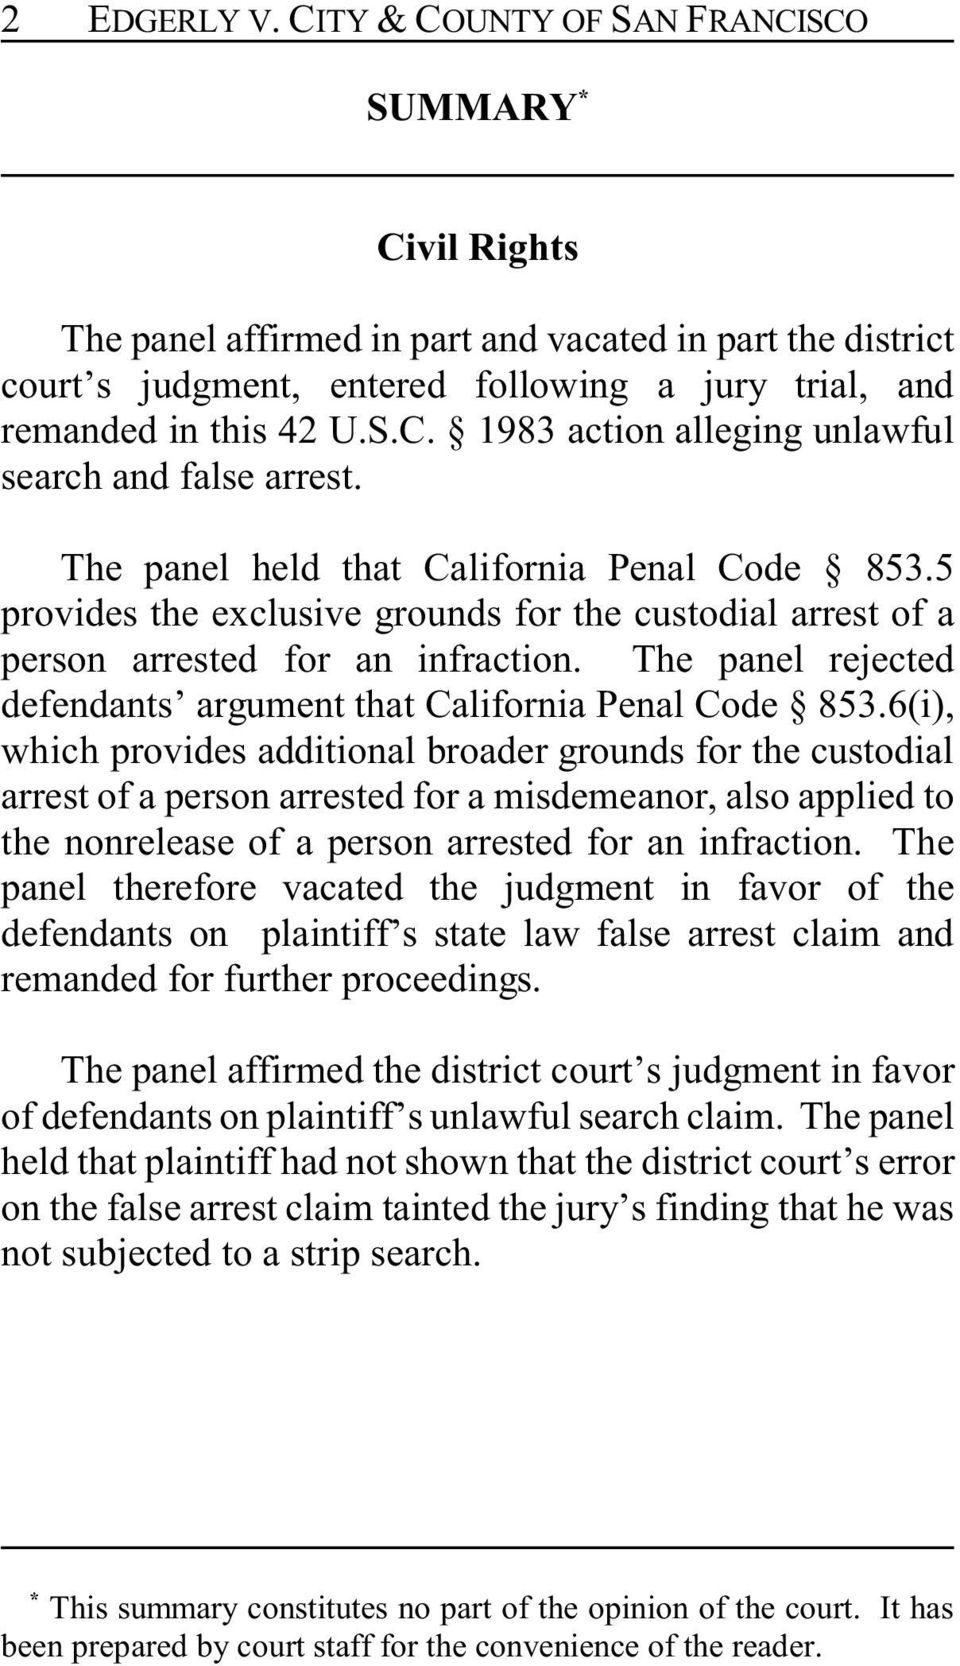 The panel held that California Penal Code 853.5 provides the exclusive grounds for the custodial arrest of a person arrested for an infraction.